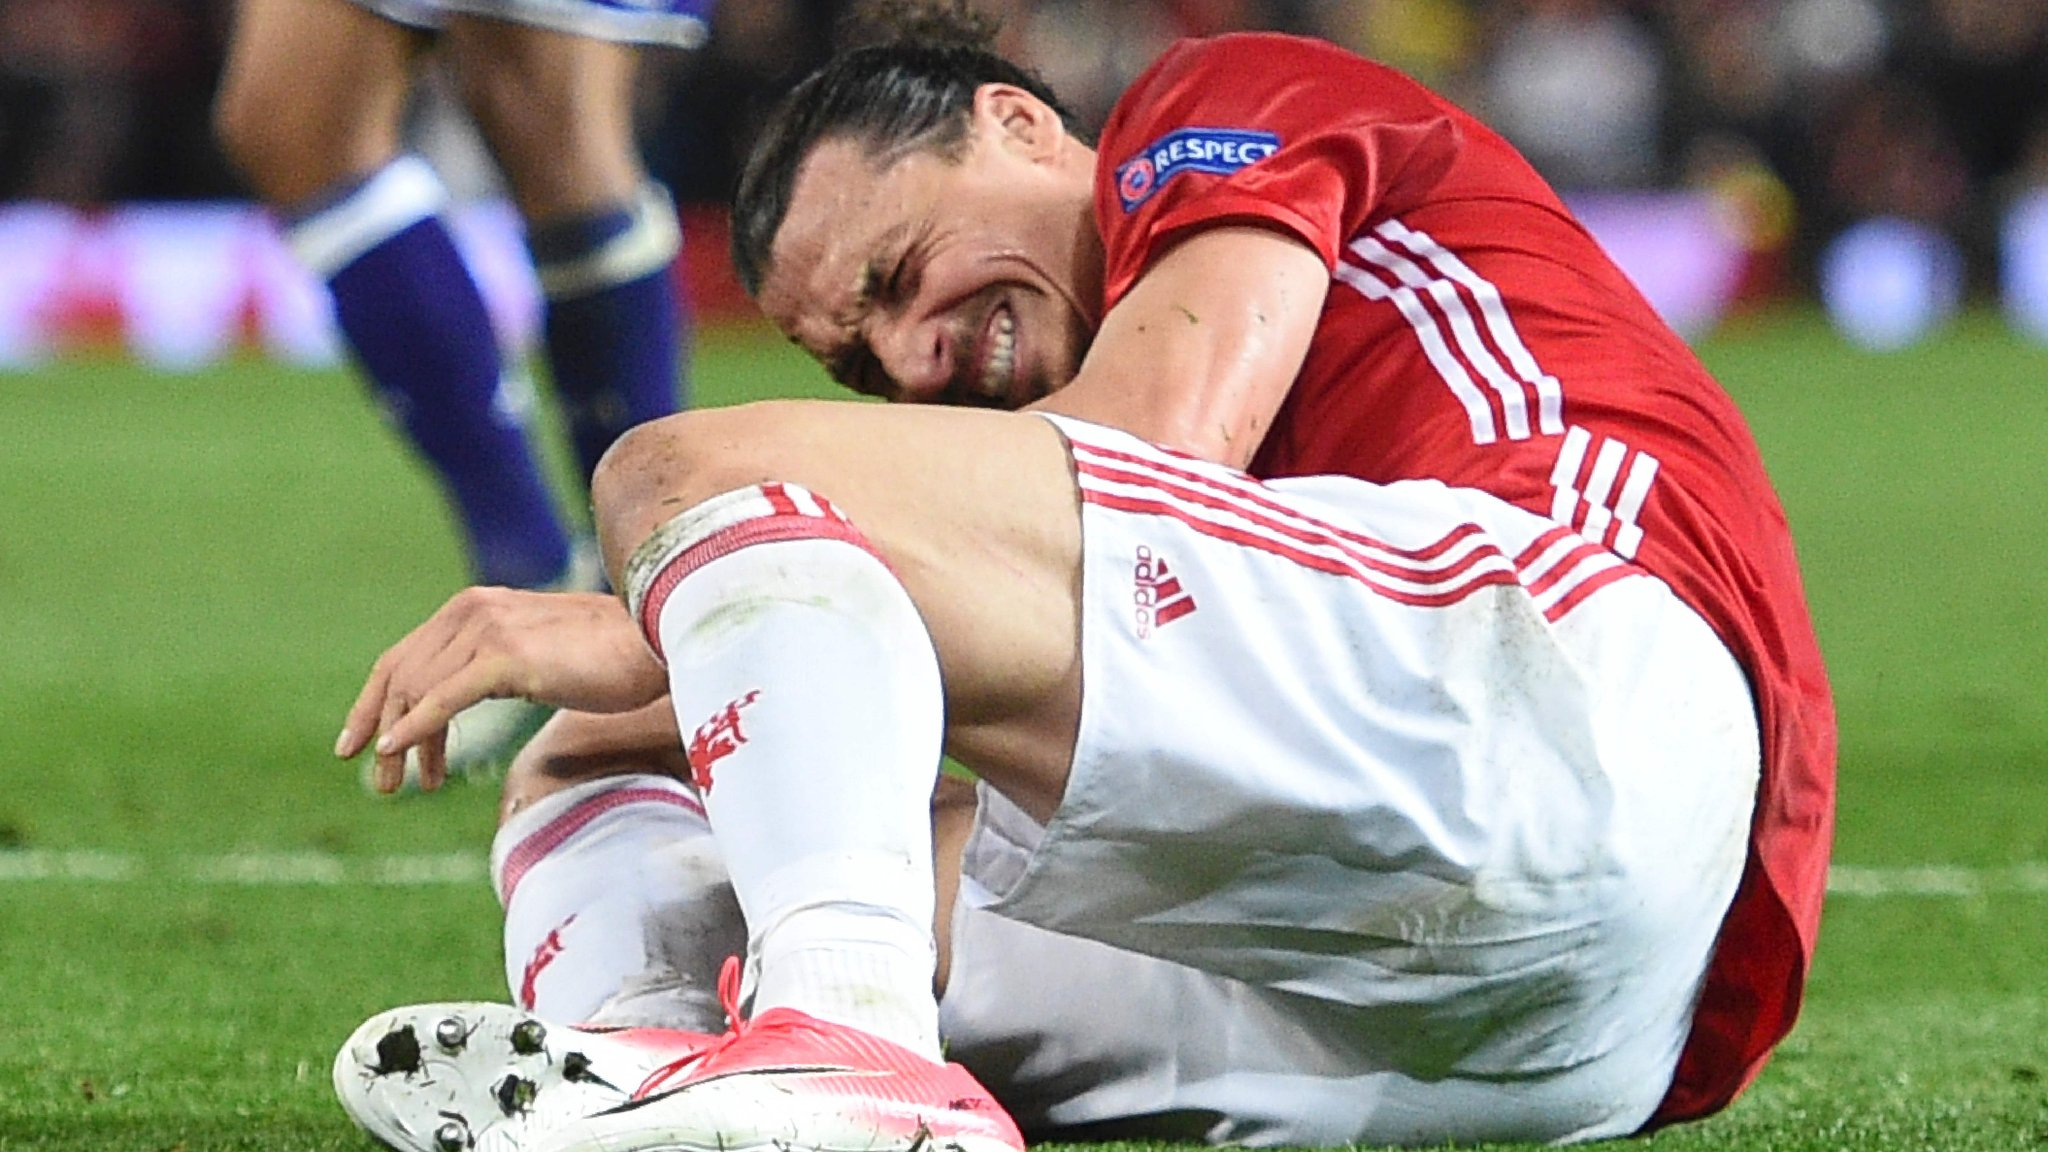 I will come back even stronger - Ibrahimovic